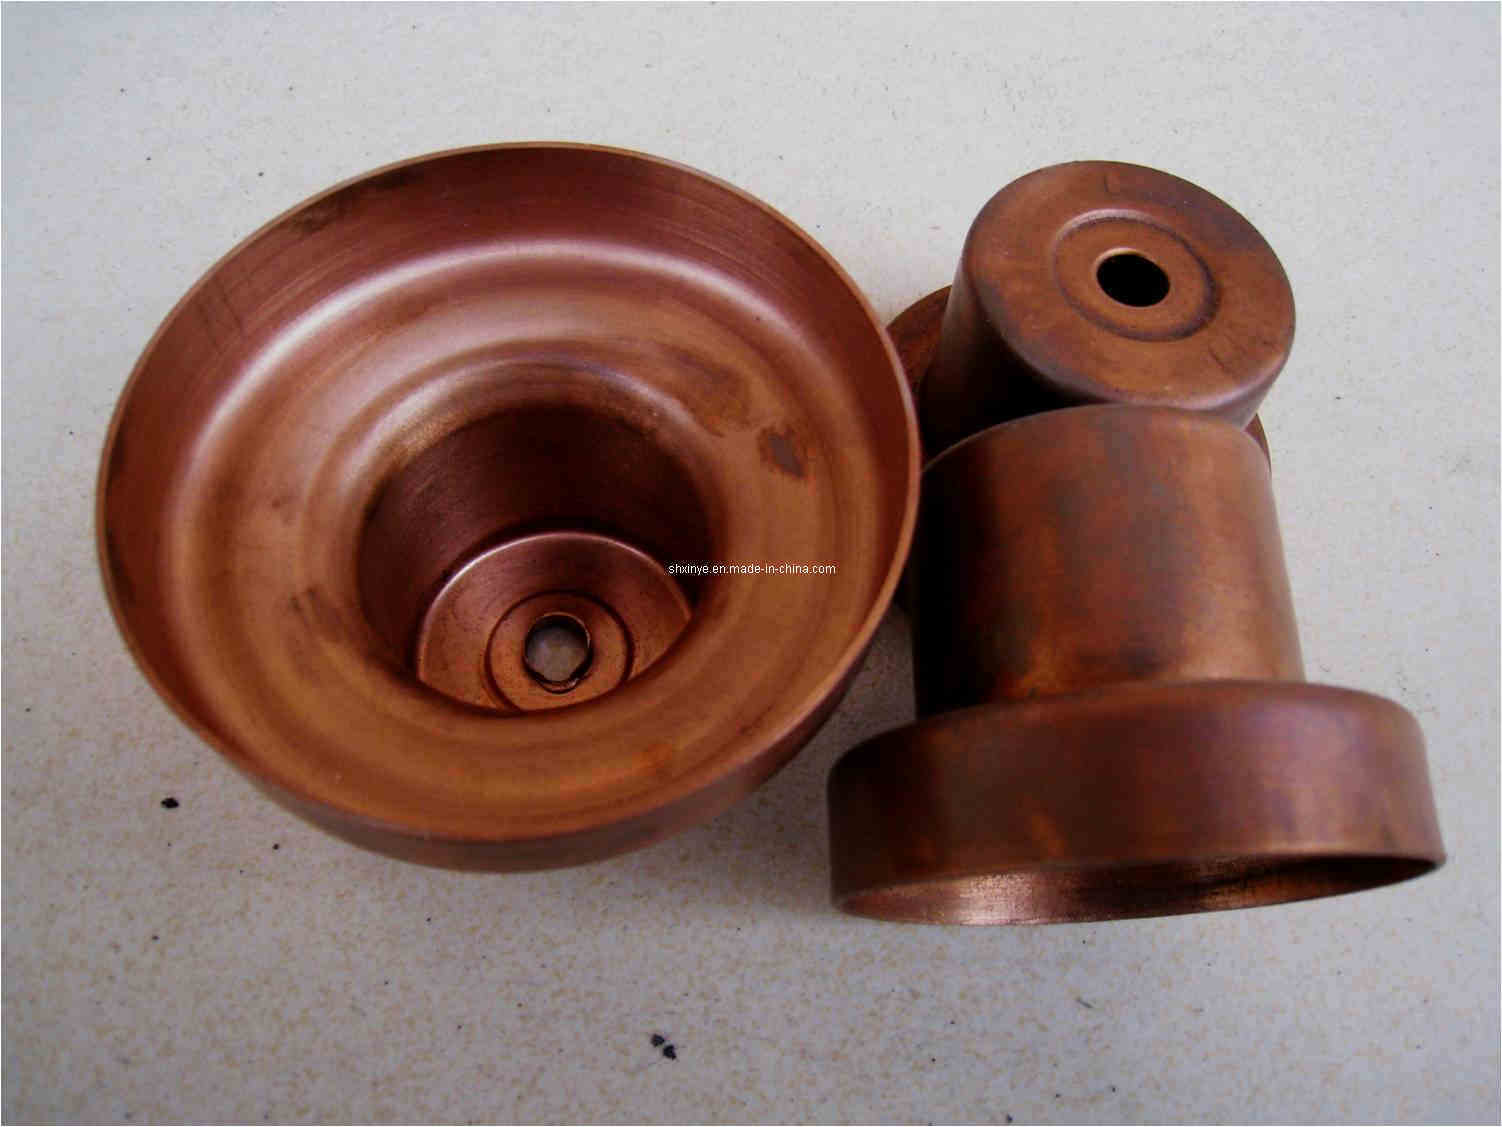 Copper Electrical Components : Pressed copper parts for electric apparatus photos pictures